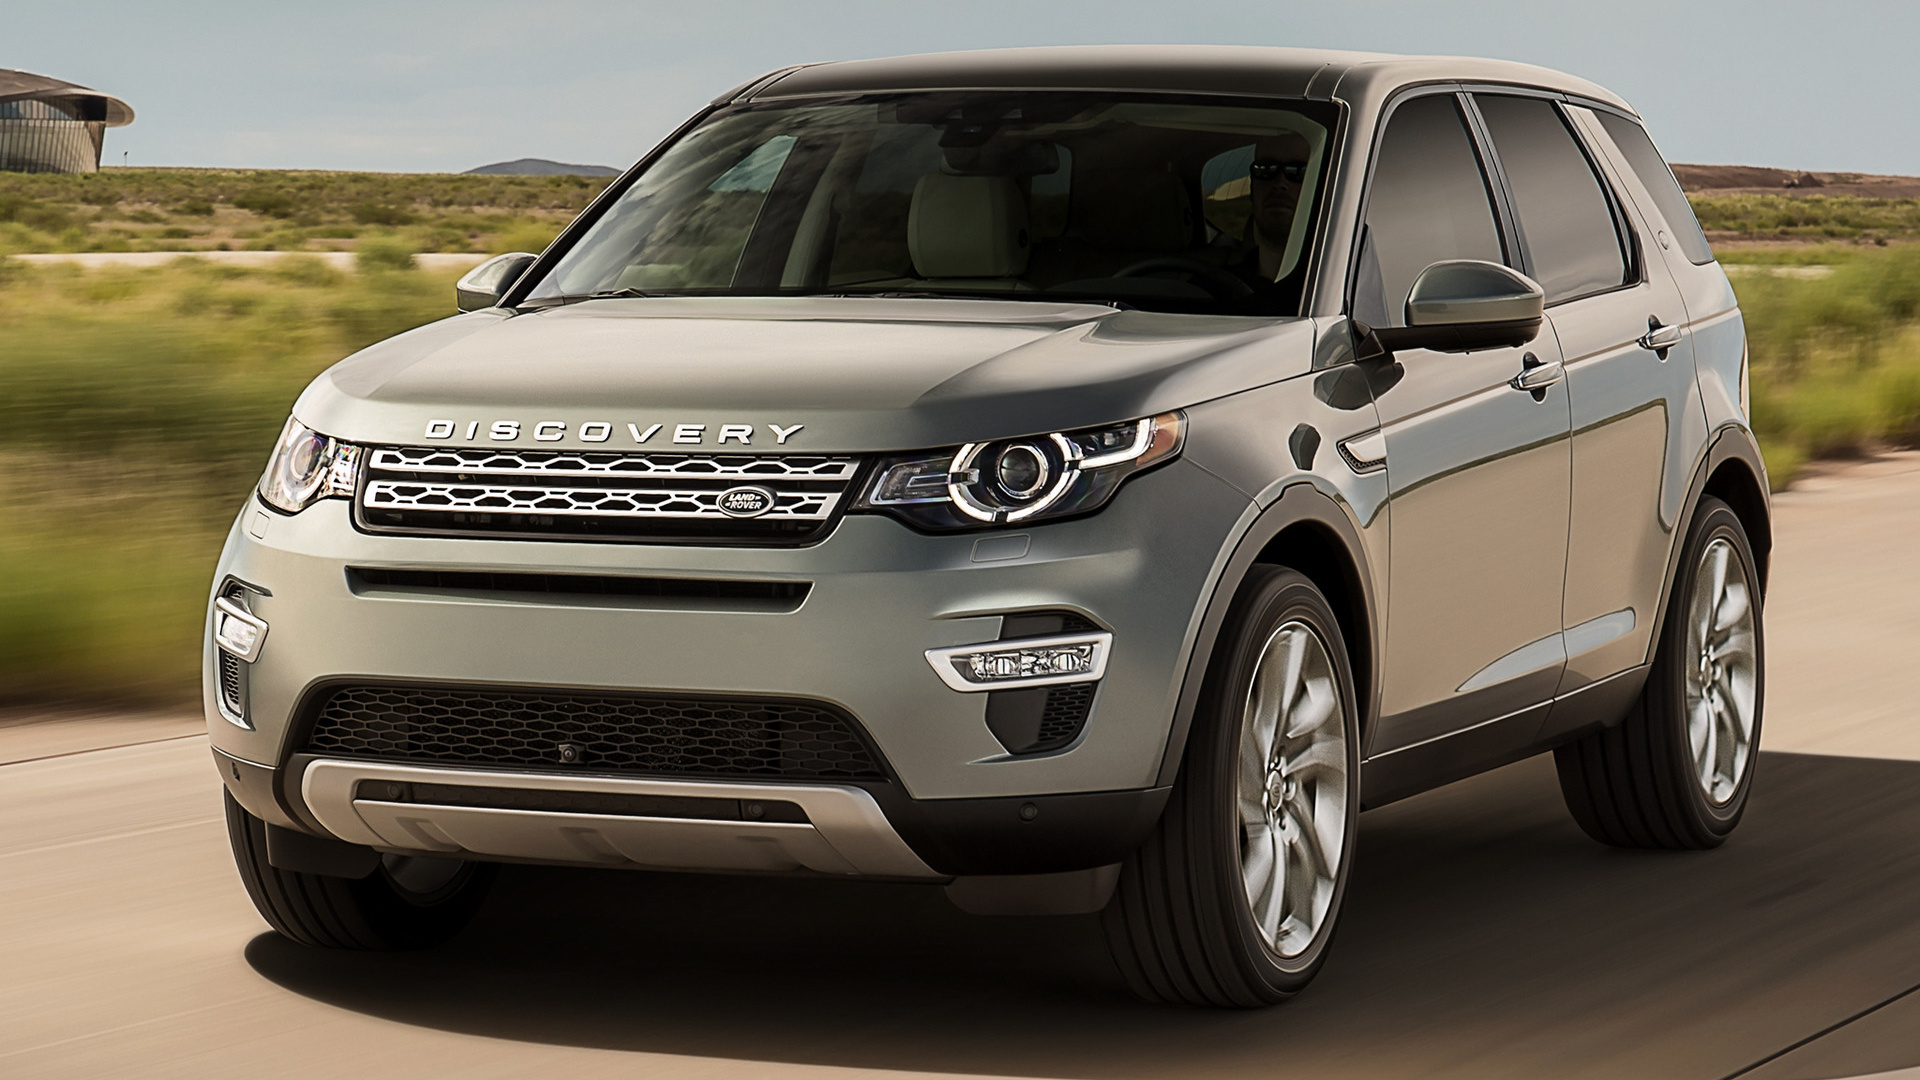 land rover discovery sport hse luxury 2015 wallpapers. Black Bedroom Furniture Sets. Home Design Ideas